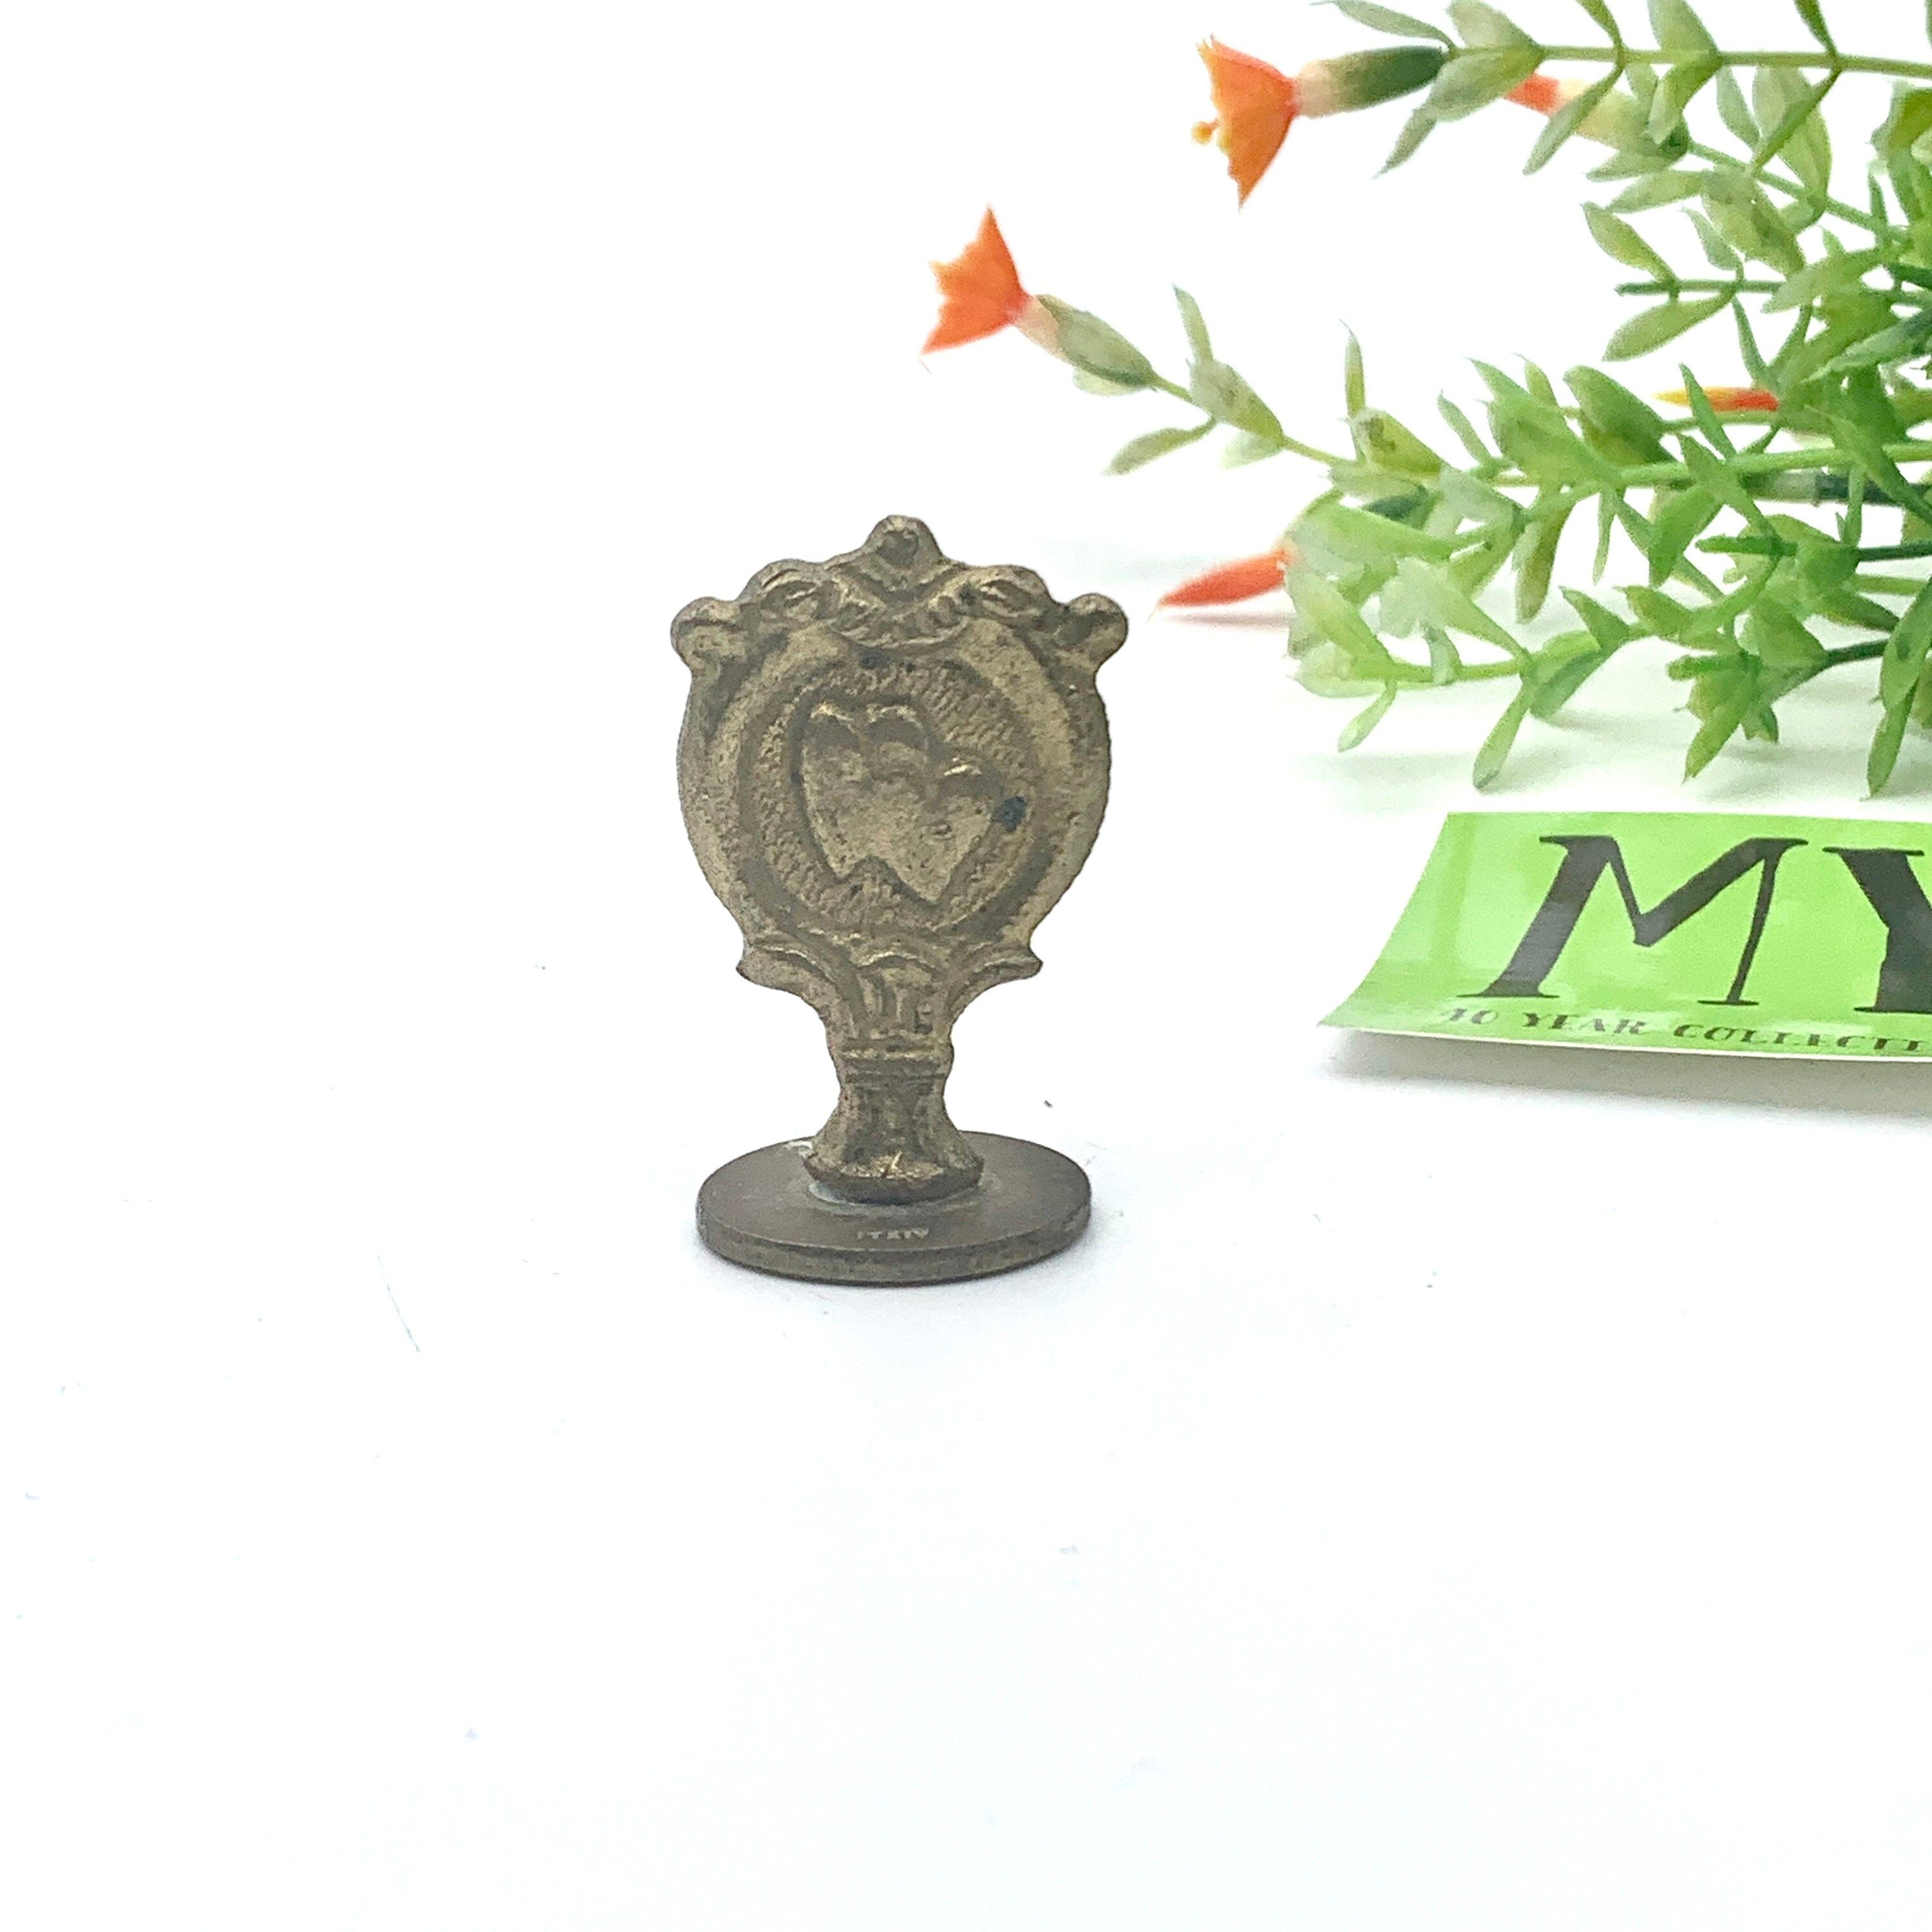 Vintage Brass Wax Seal Stamp Love Stamp Love Engraving Stamp Made in Italy Card…